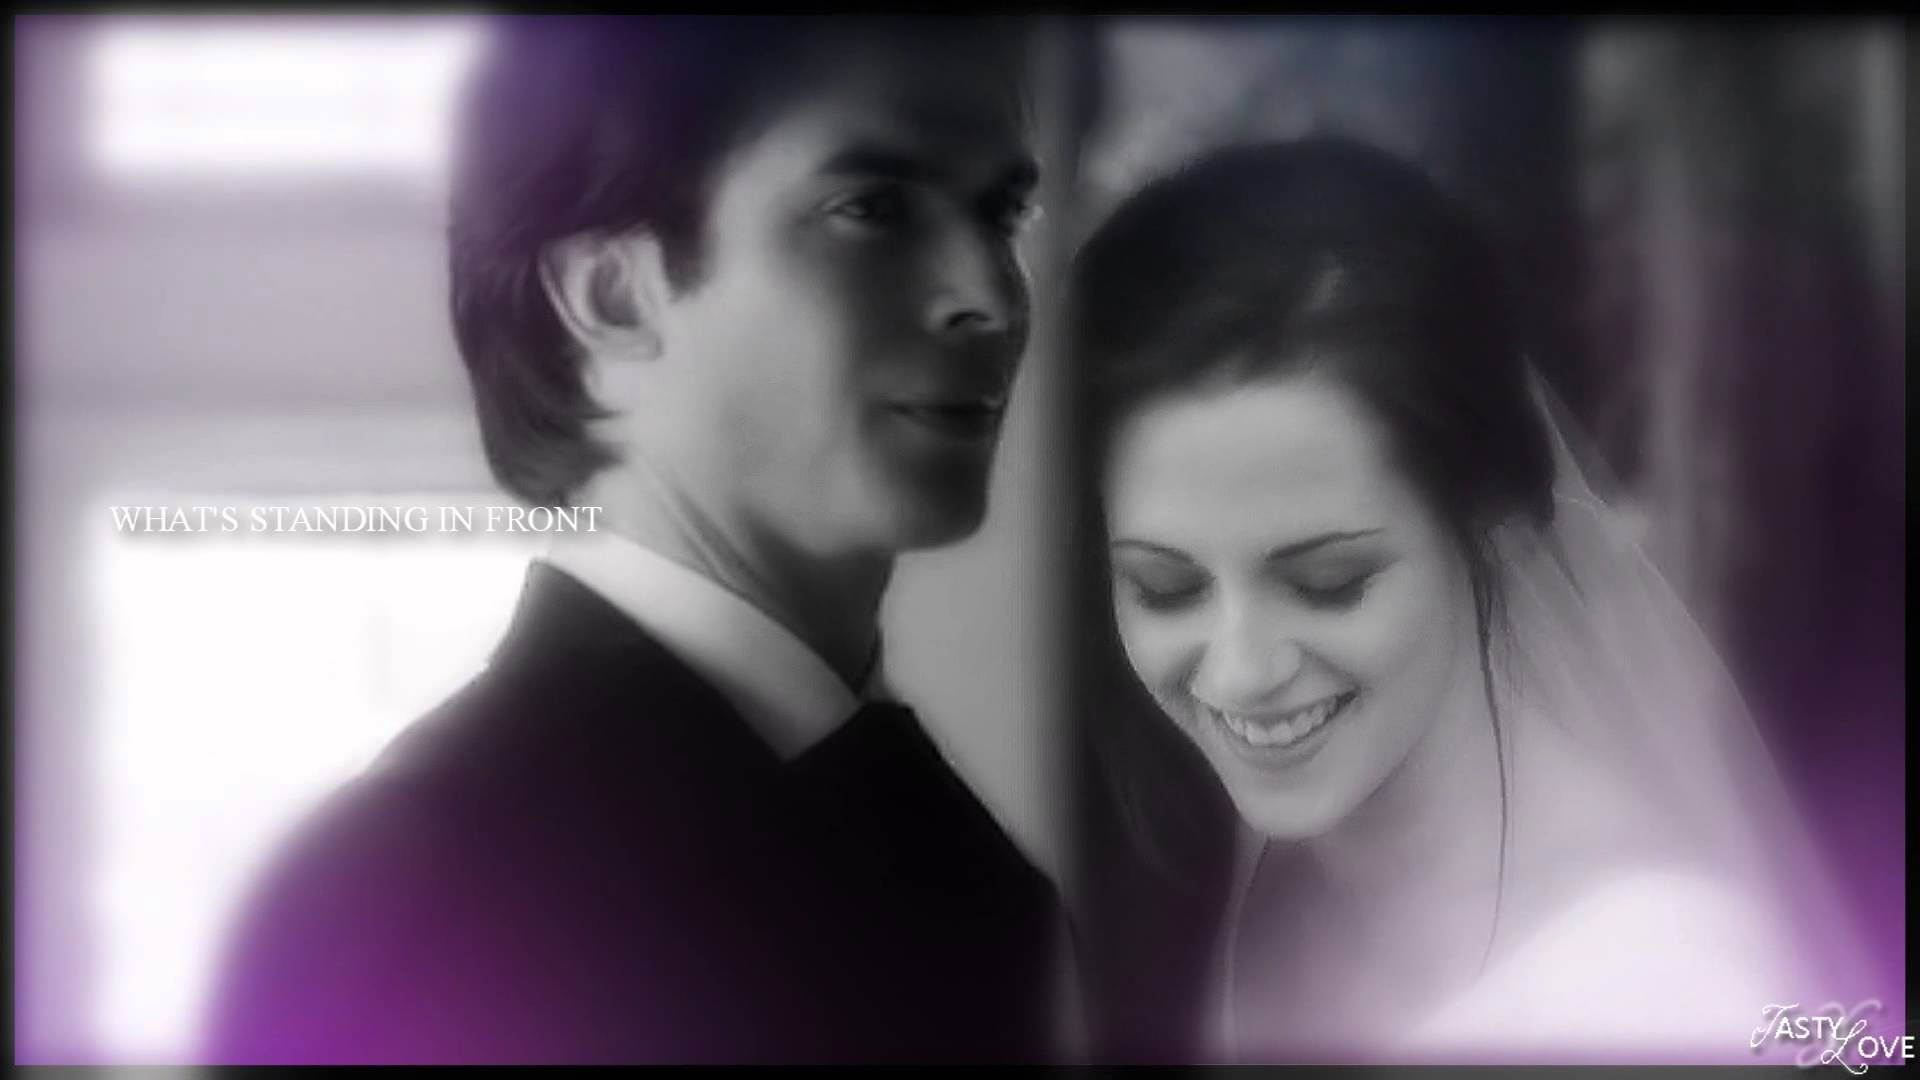 bella and damon fanfic - Buscar con Google | Damon and Bella